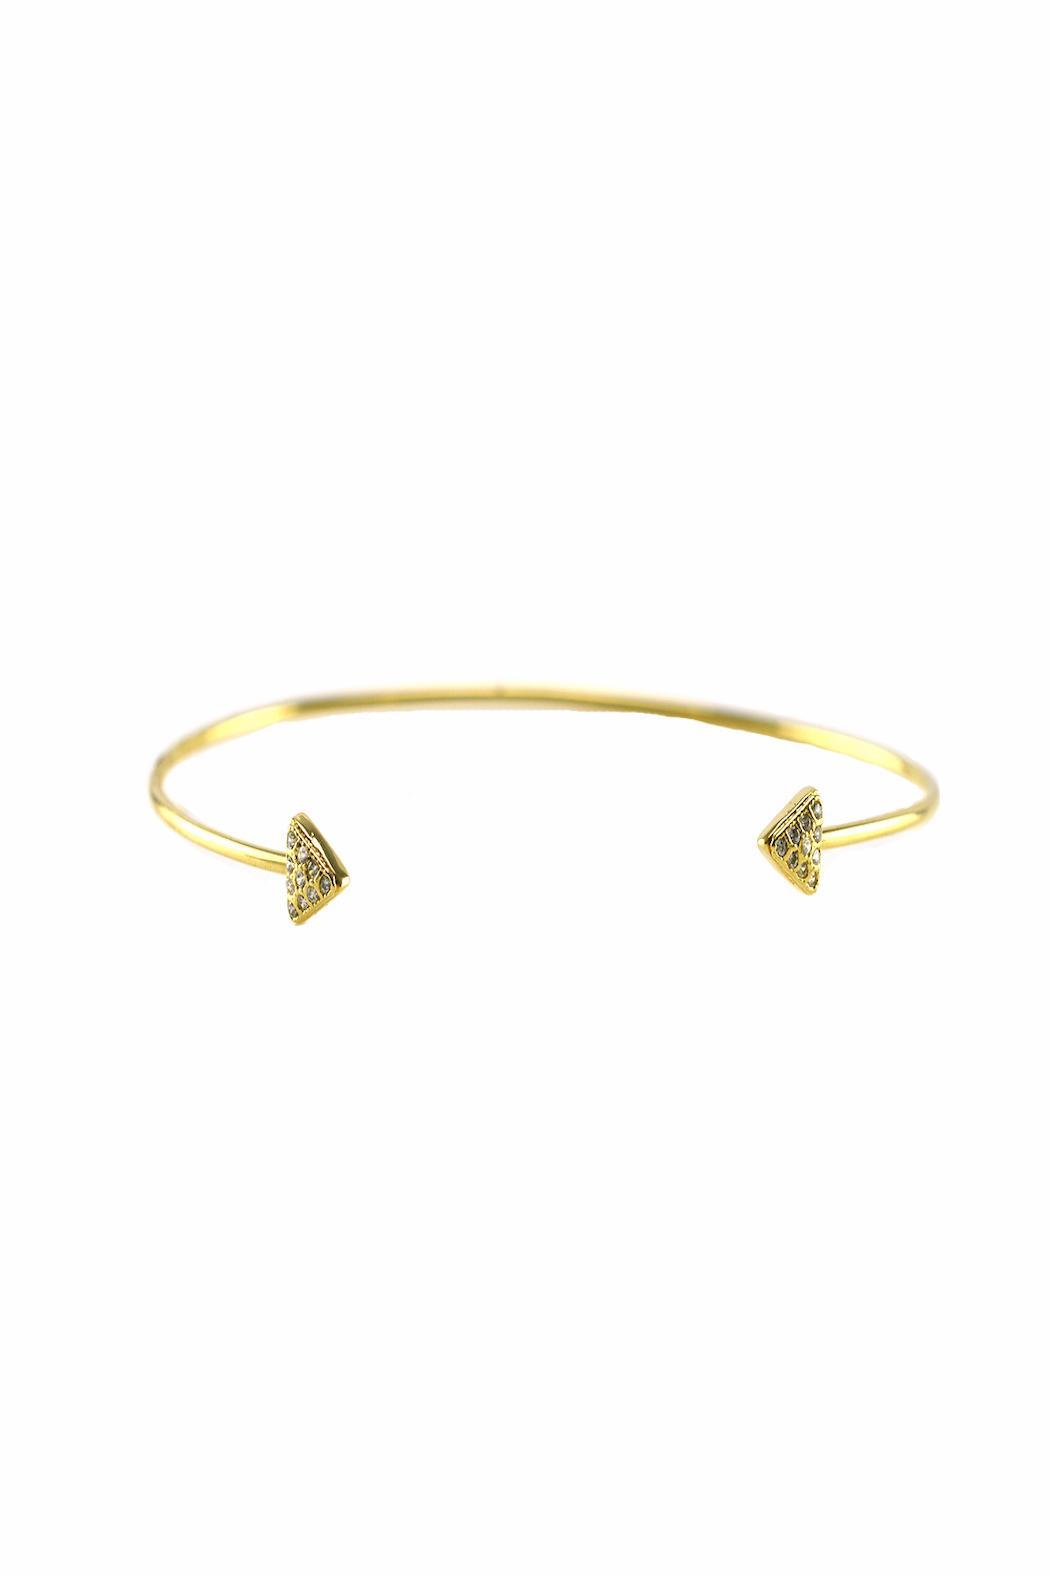 Baggis Accesorios Gold Plated Triangle Bracelet - Main Image